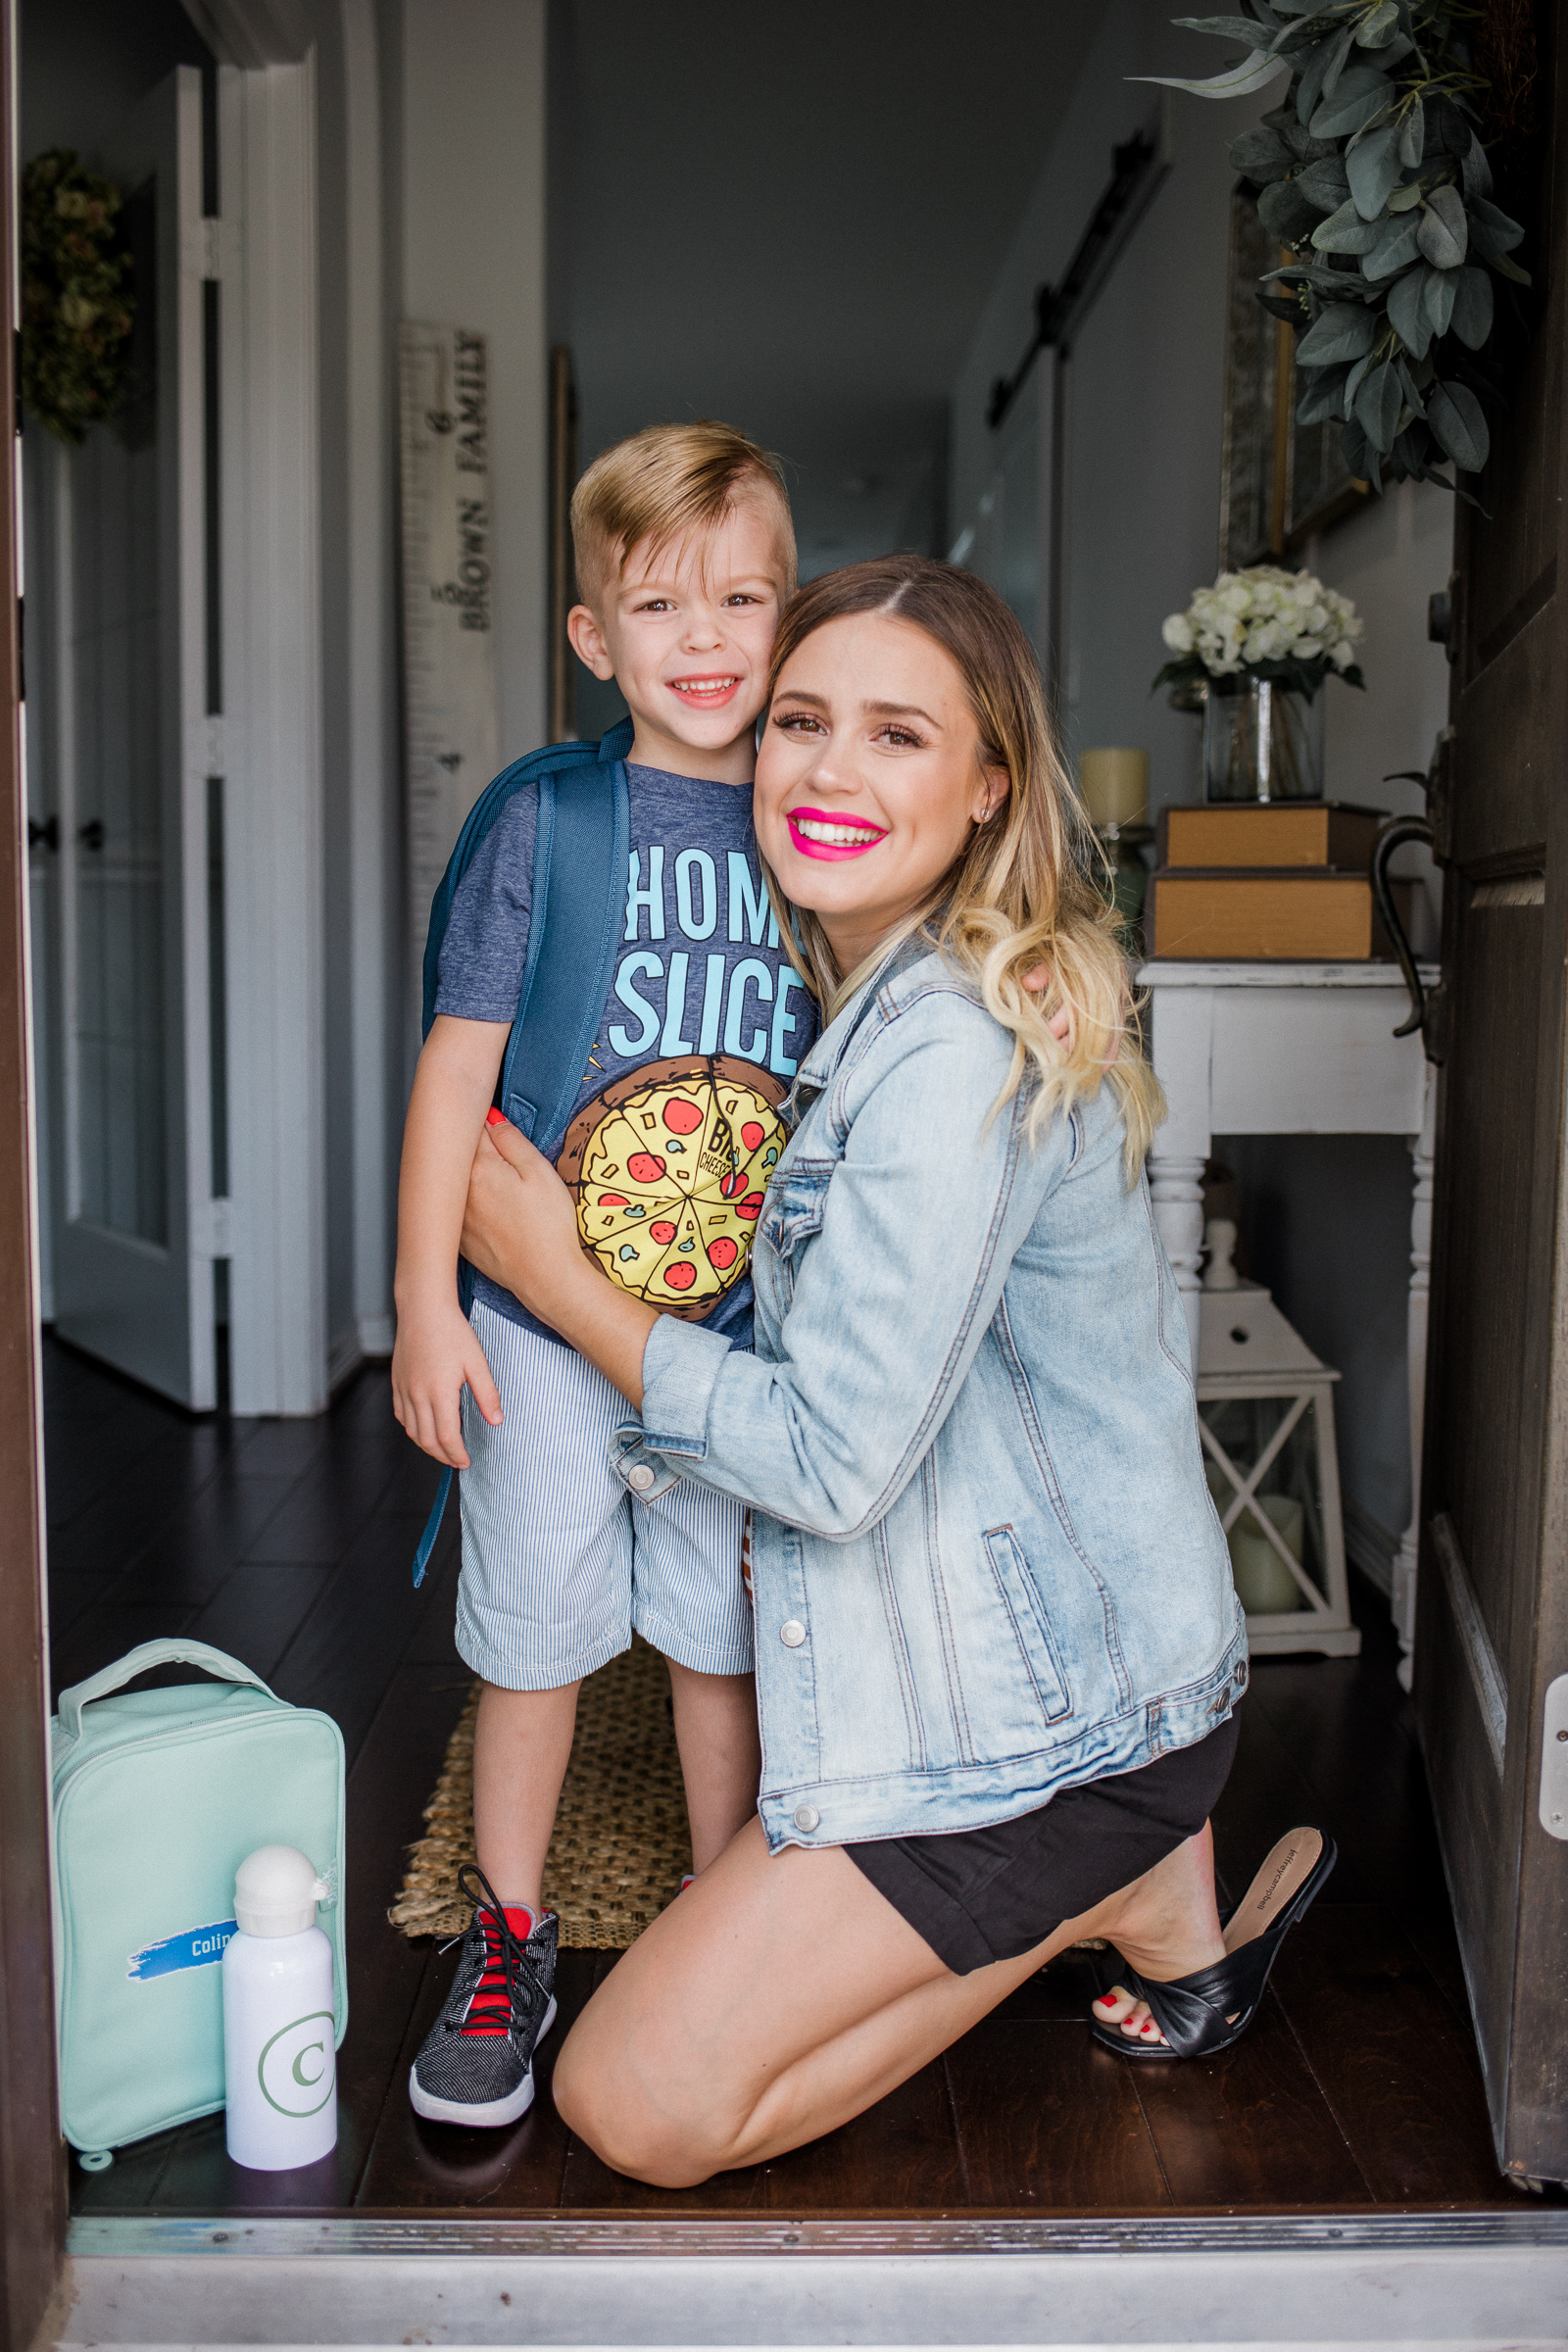 Houston Lifestyle blogger Elly Brown shares Stuck On You products and why they love it for Back to School Supplies!